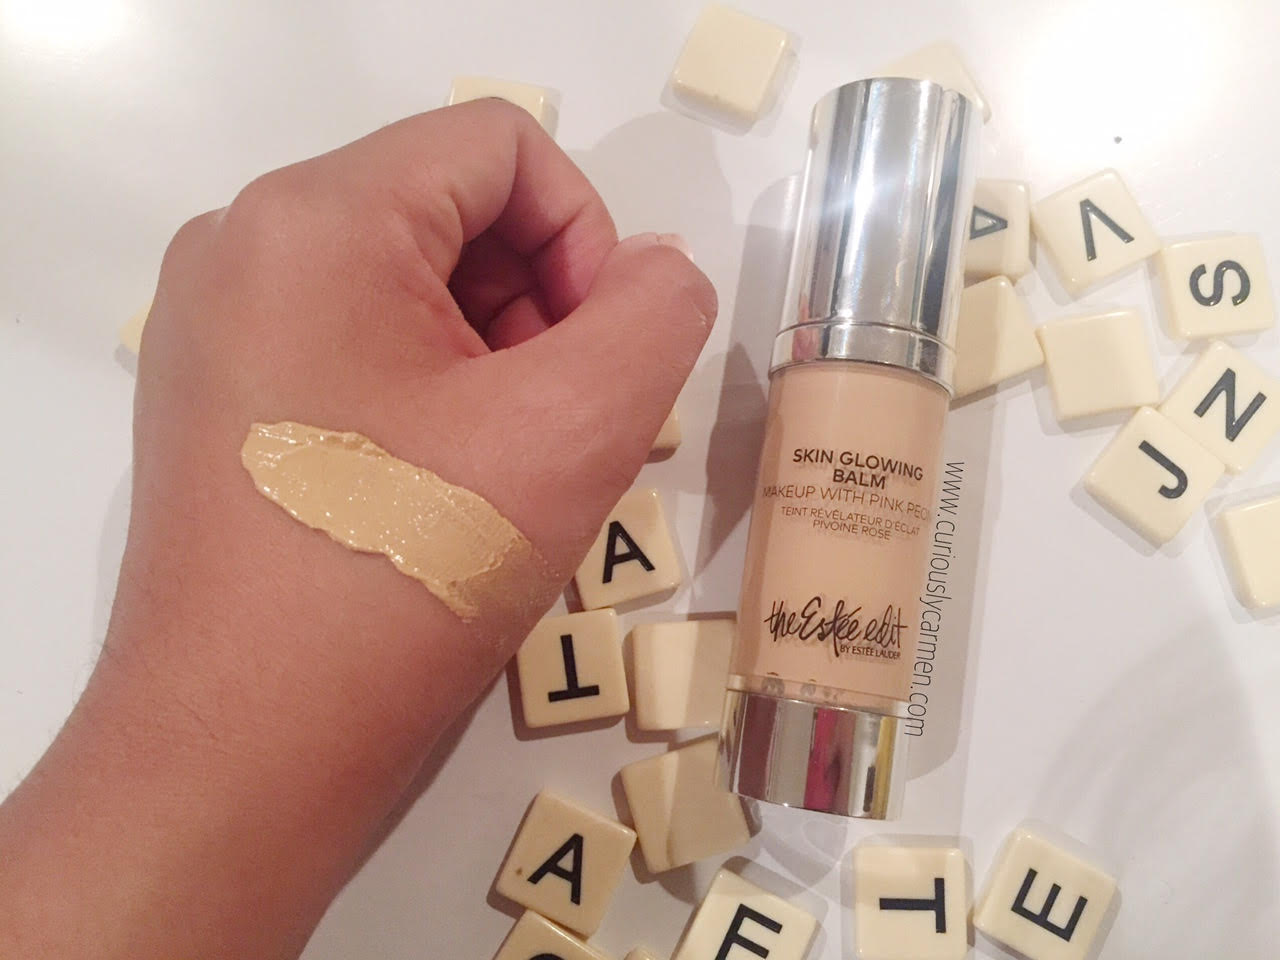 Estee Lauder Skin Glowing Balm Swatch